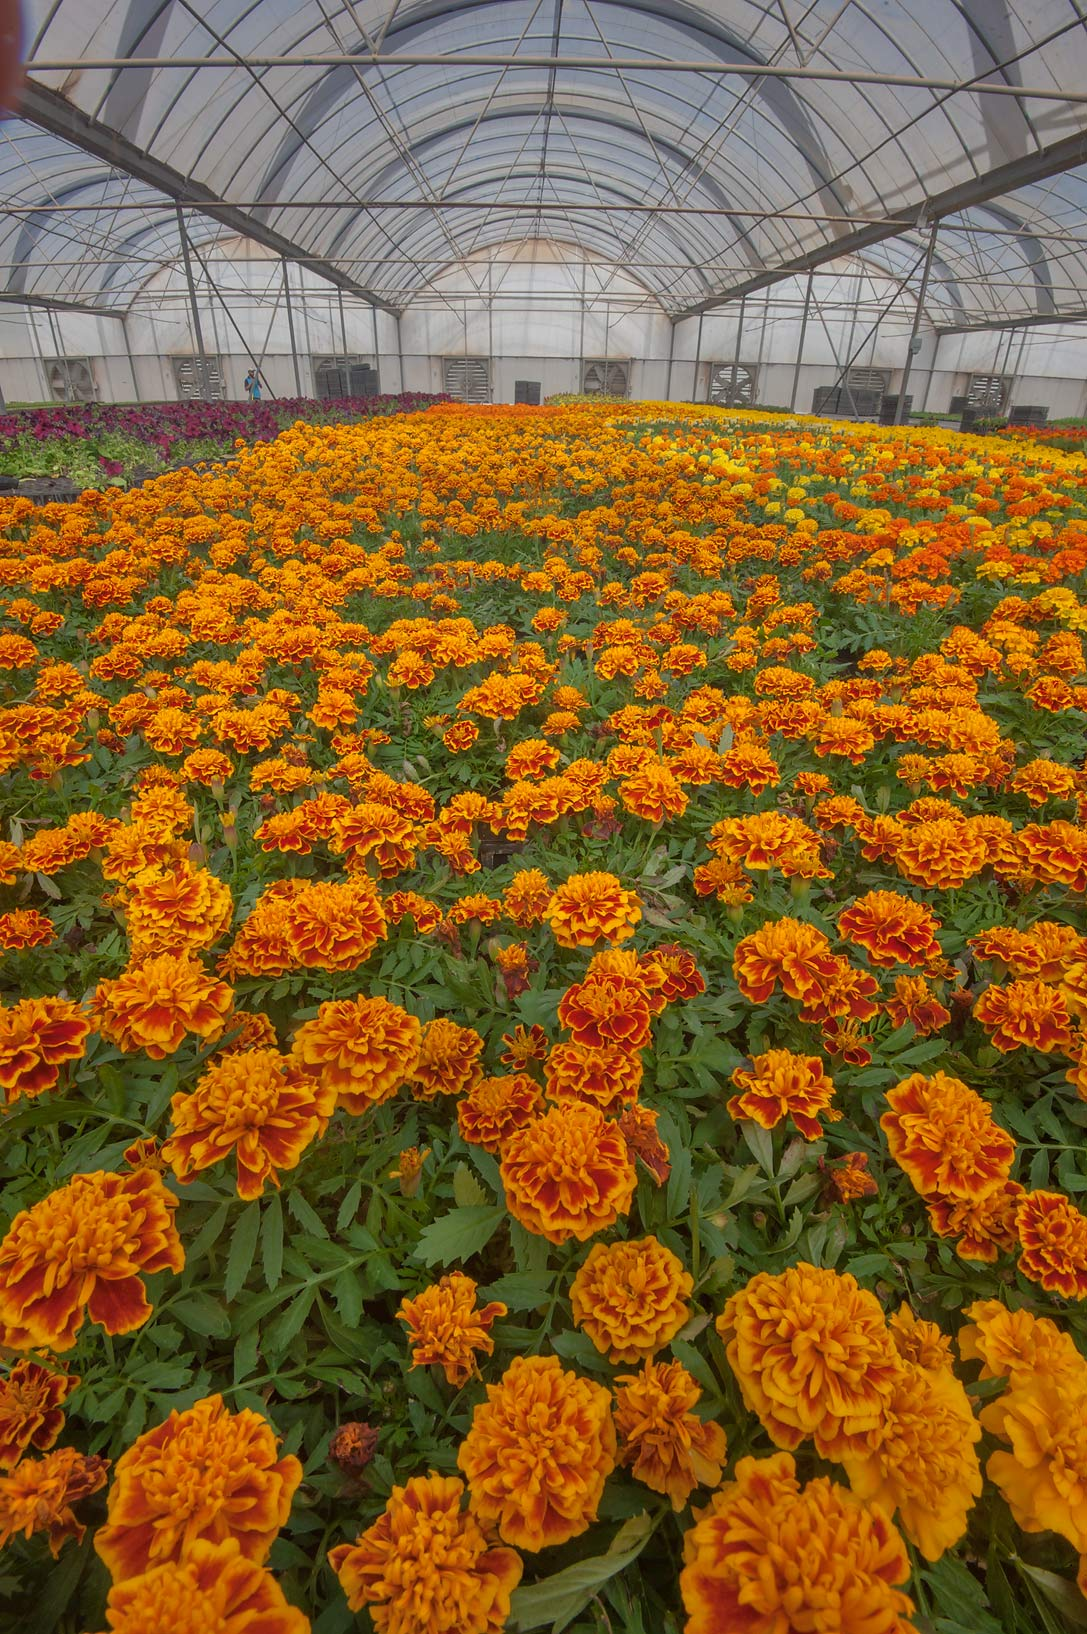 Tagetes flowers in a greenhouse in Sulaiteen Farm. Doha, Qatar